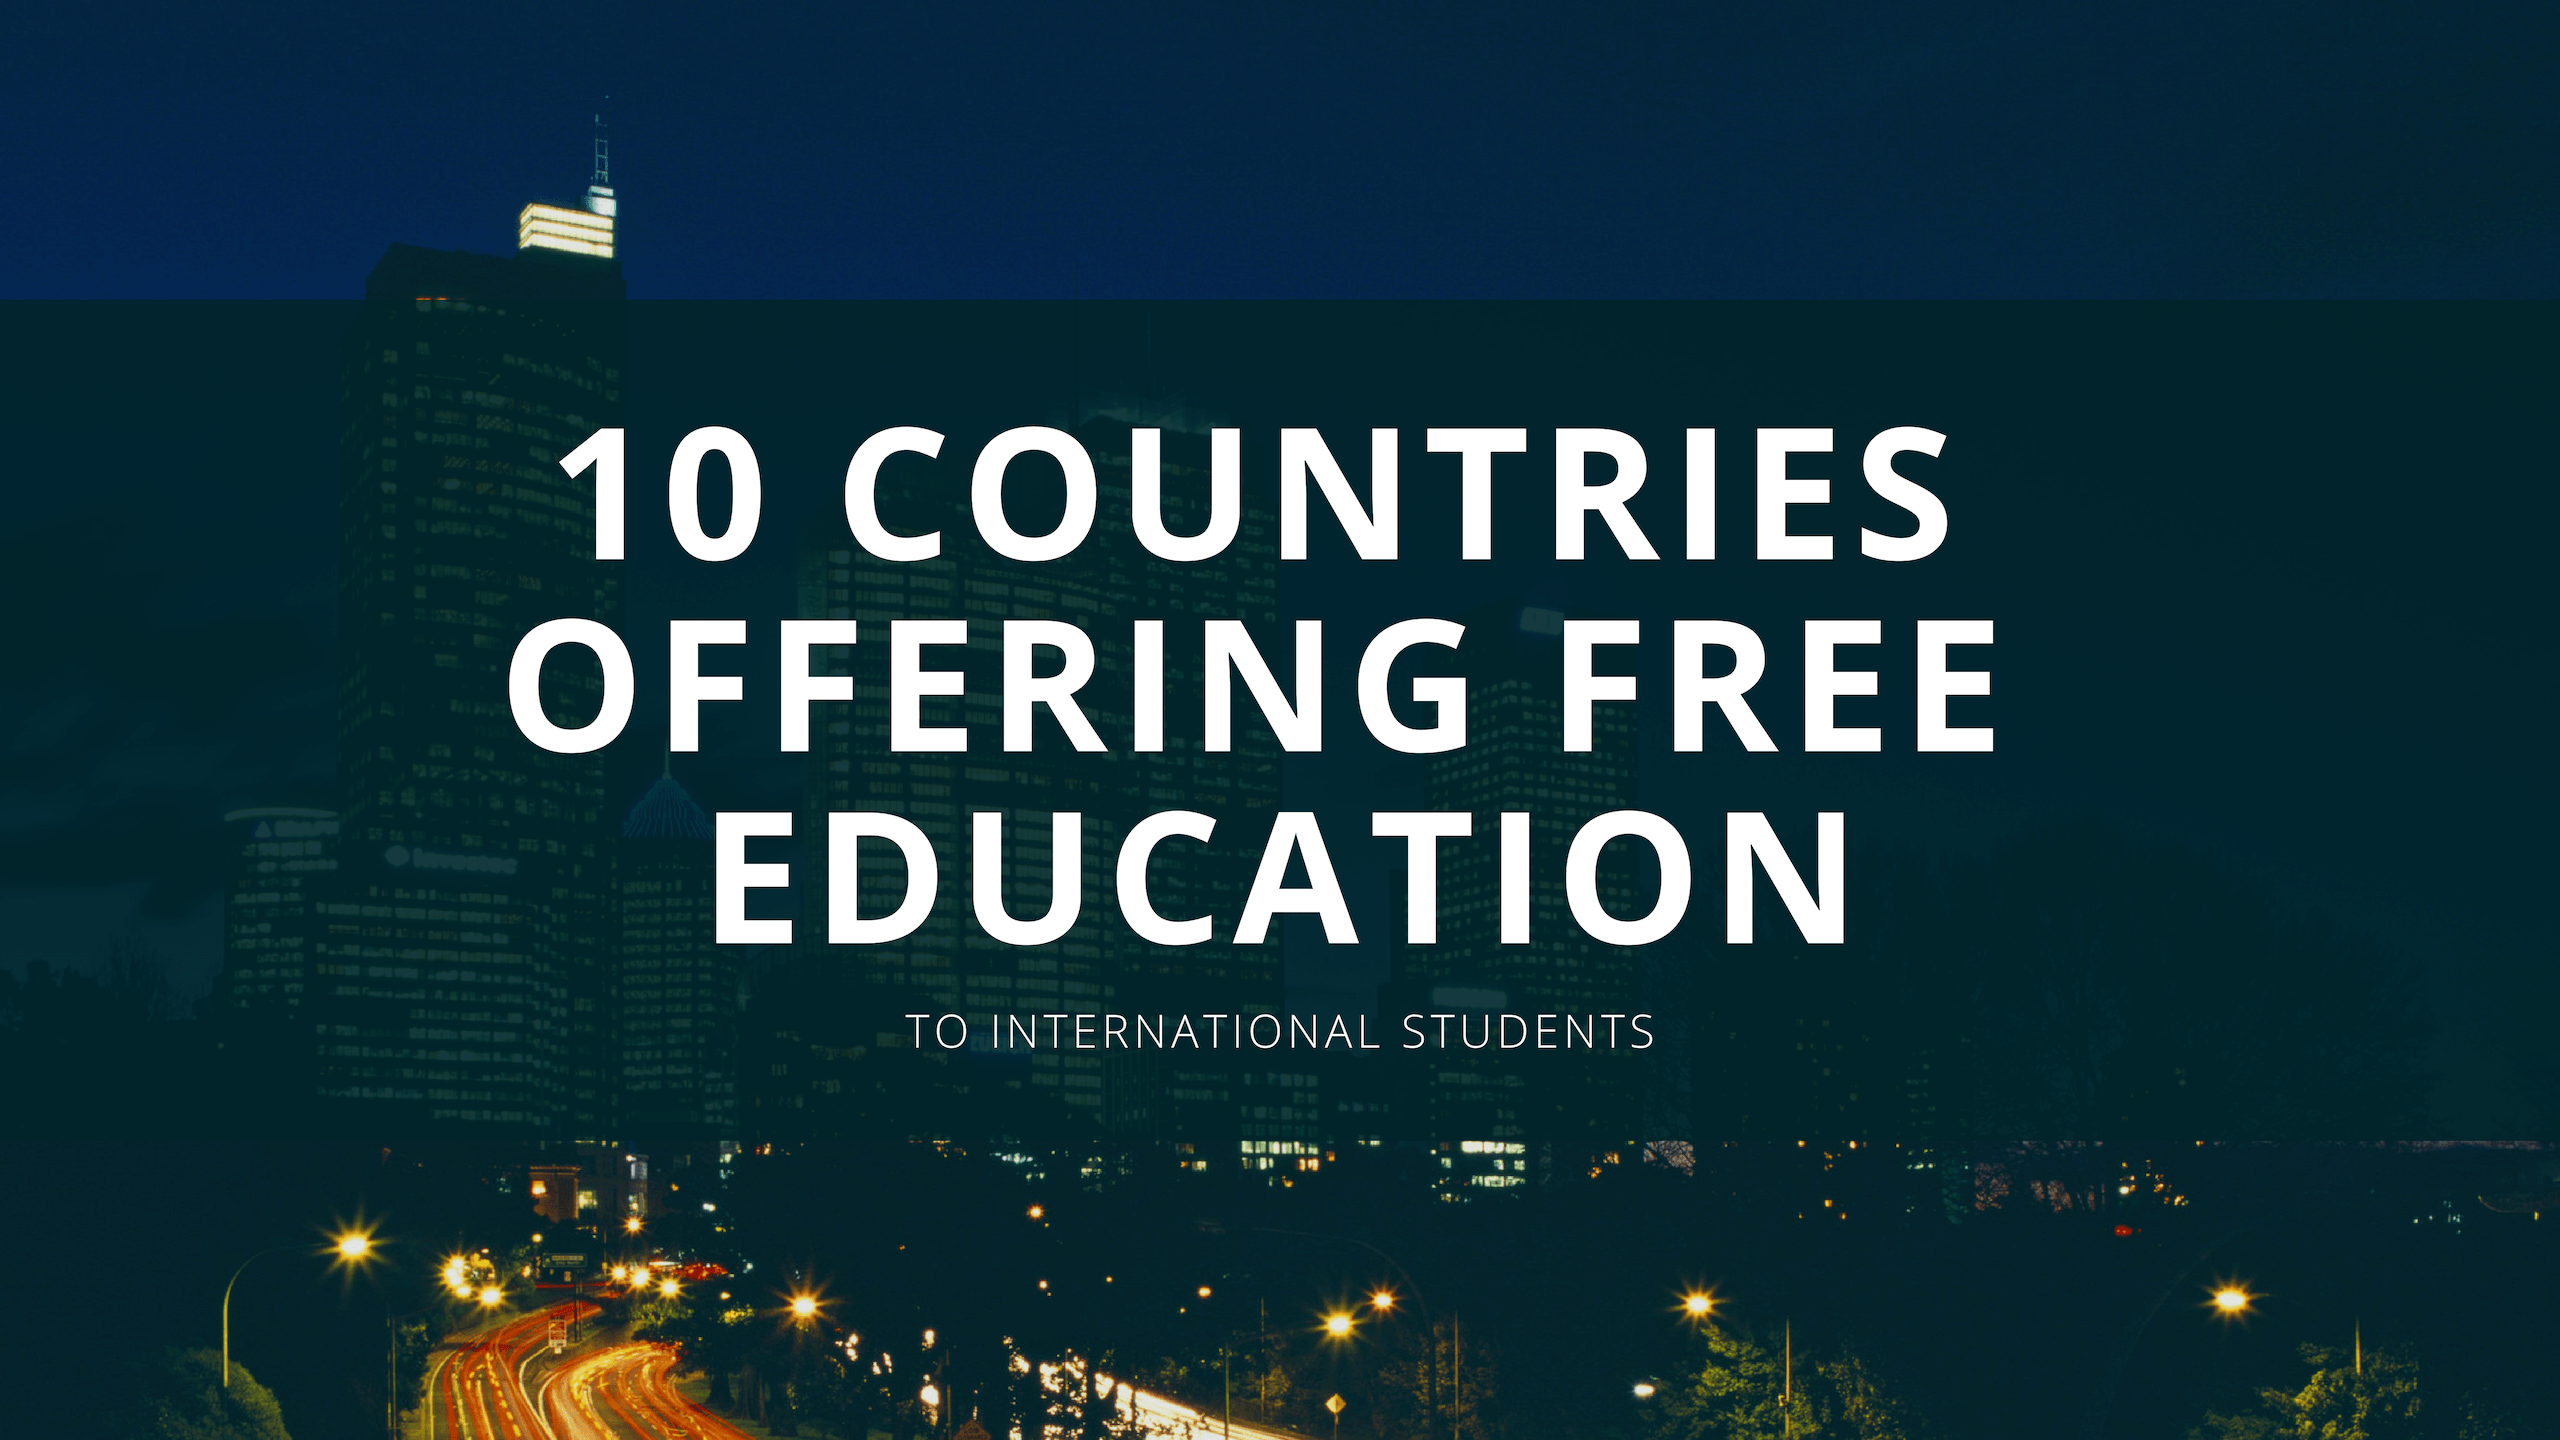 10 Countries Offer Free Education to International Students